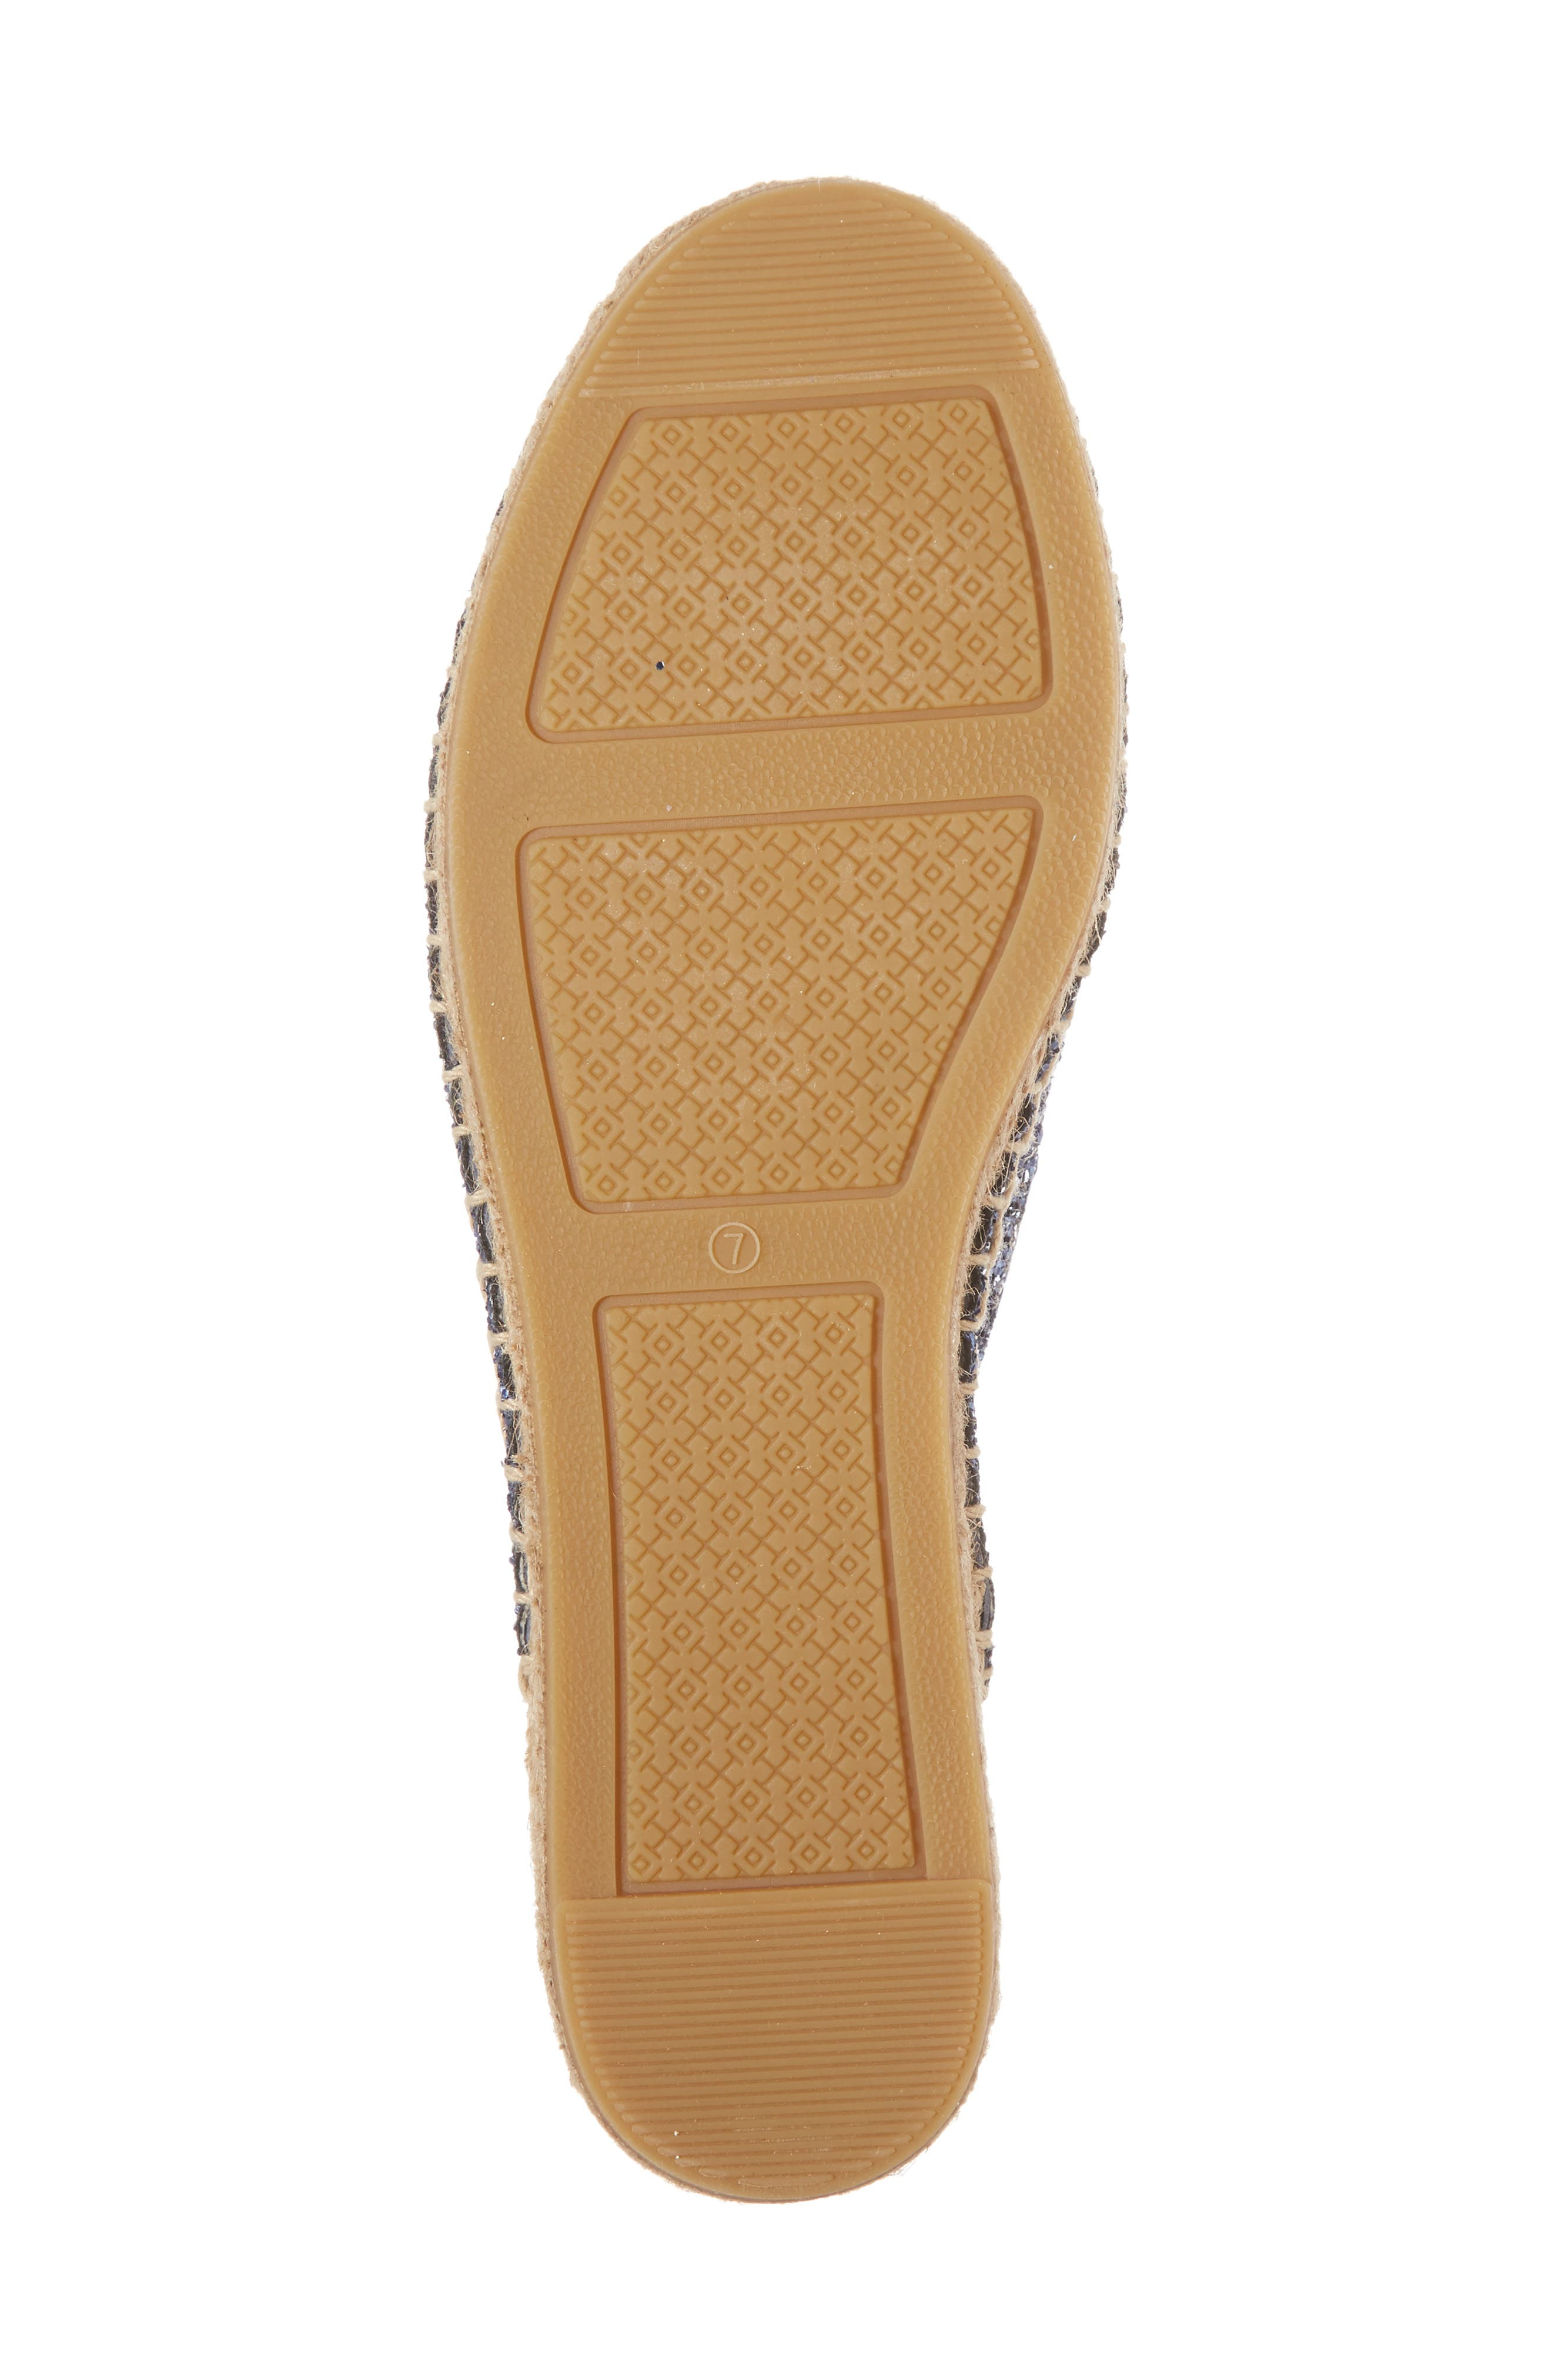 Max Glitter Espadrille Mule,                             Alternate thumbnail 6, color,                             Perfect Navy